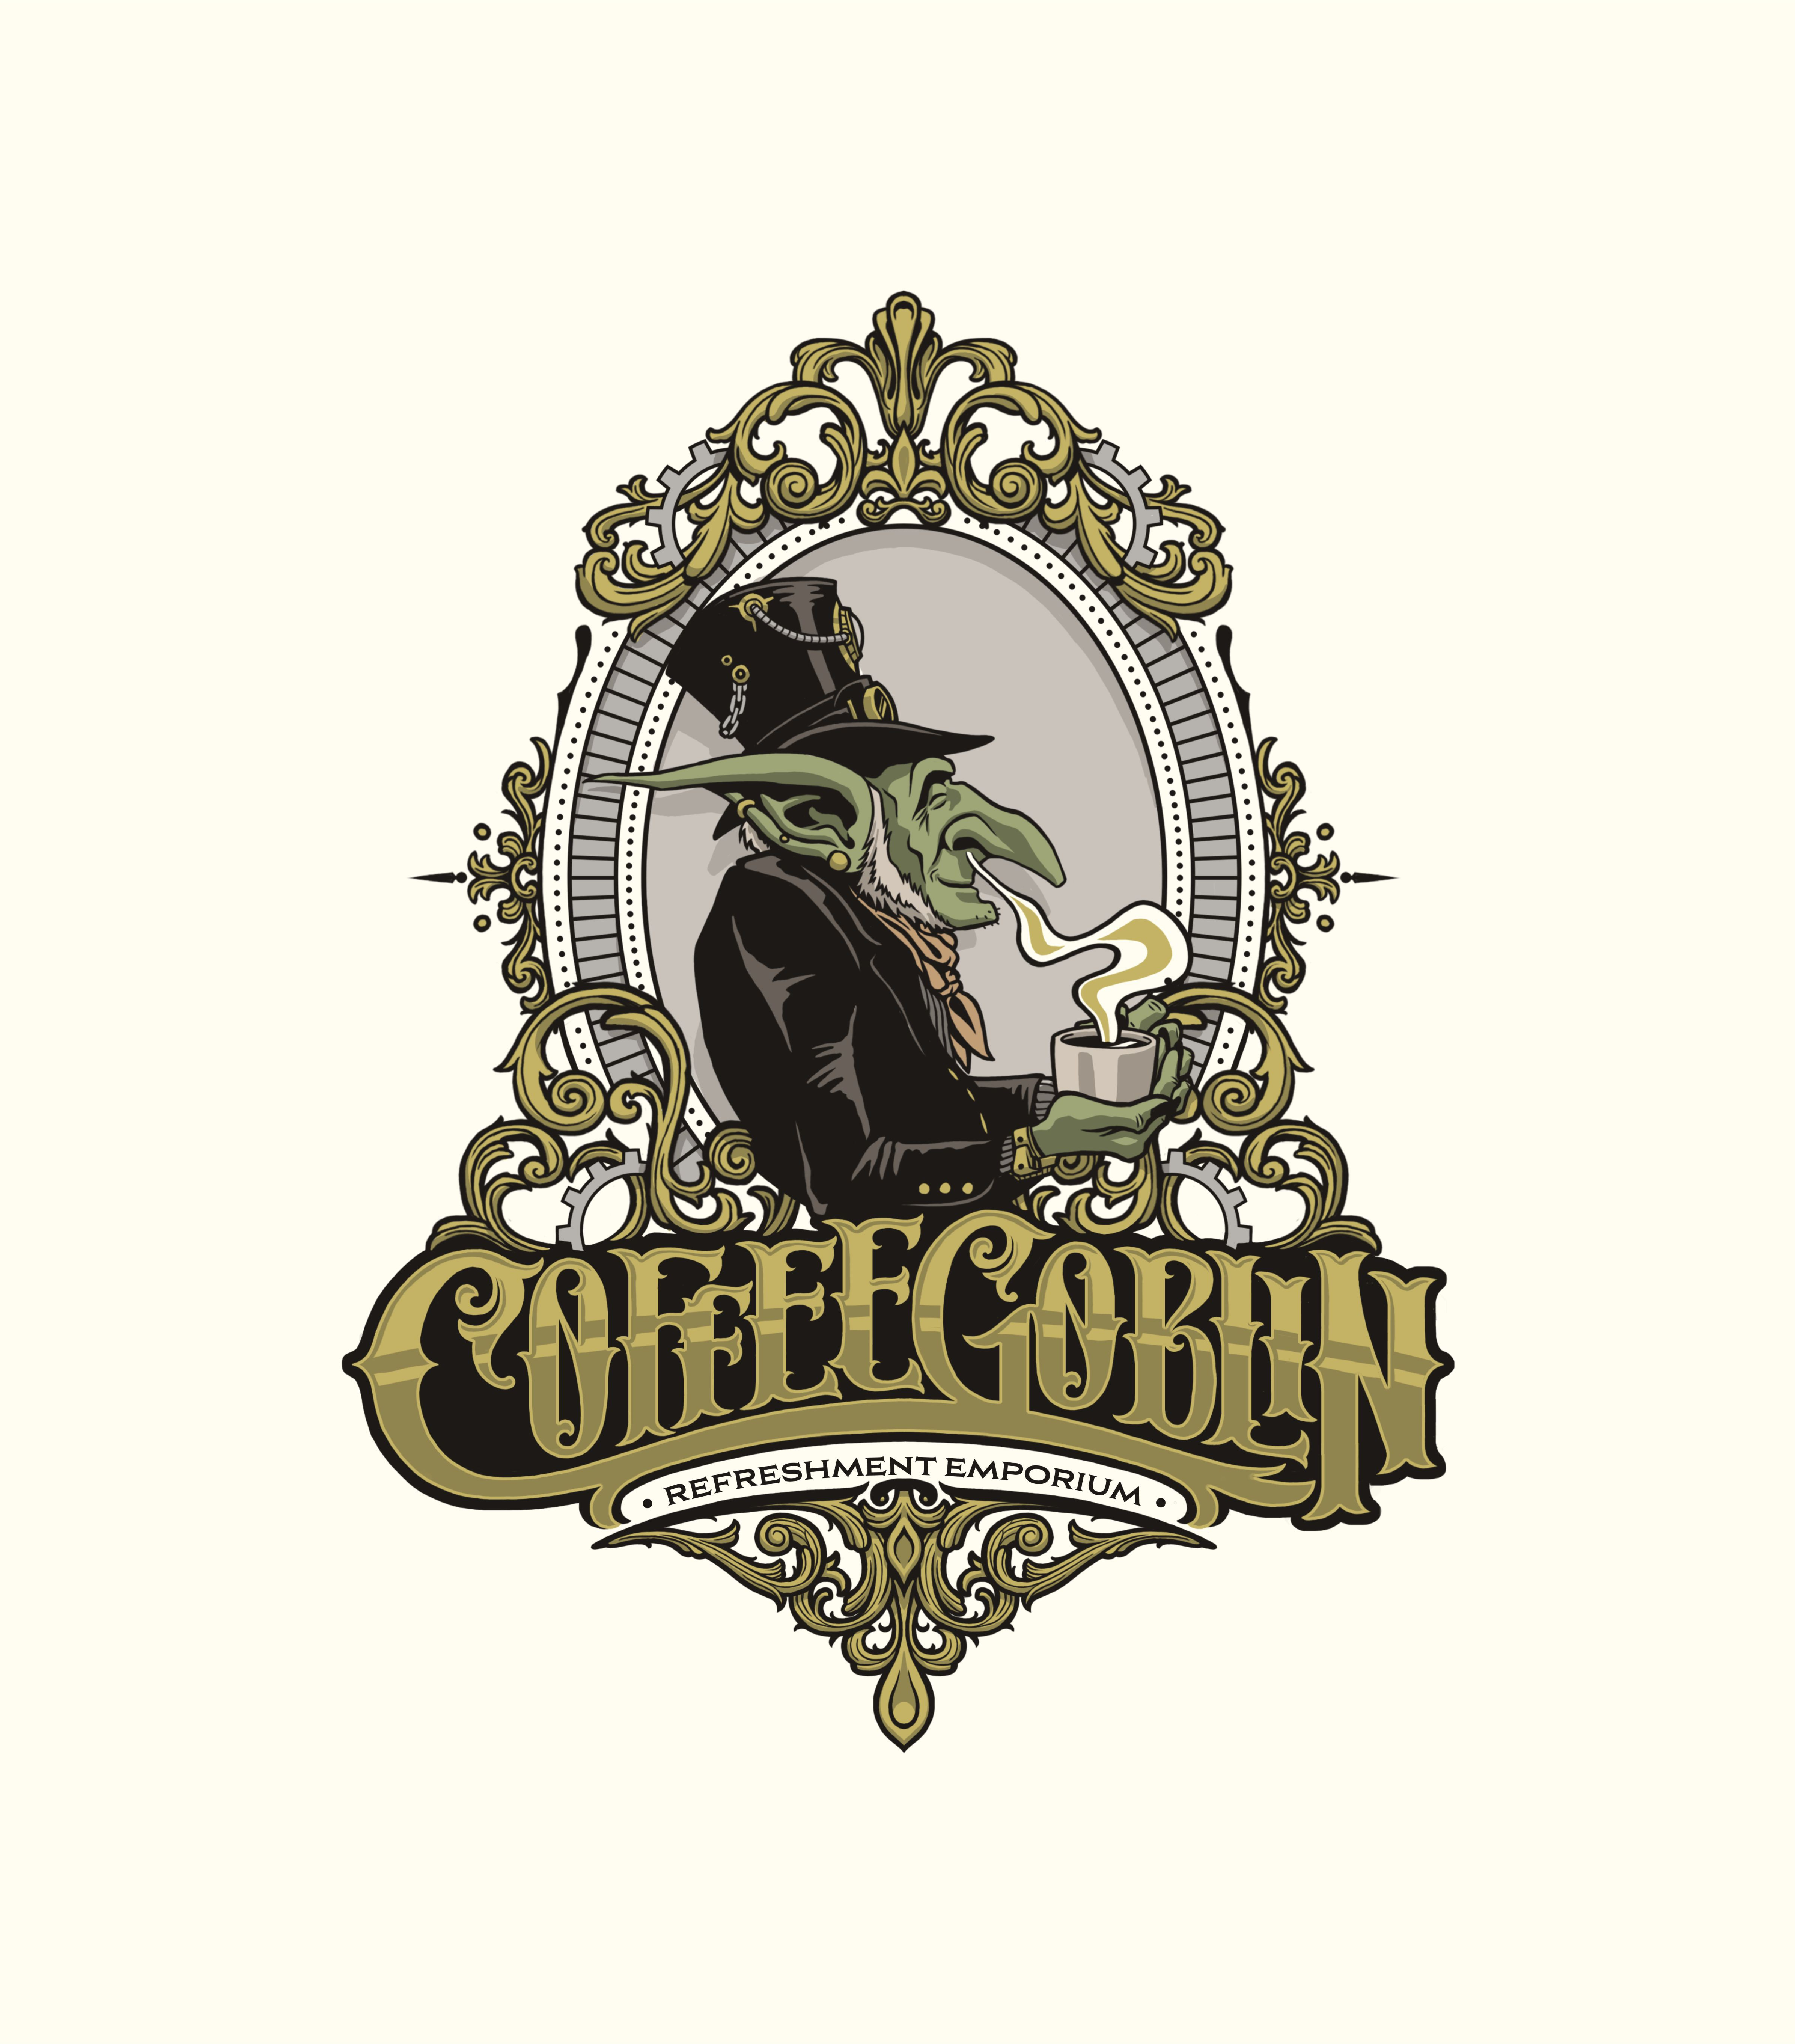 Coffee Goblin! Design a vintage coffee logo with steampunk style for coffee bag label/website/merch